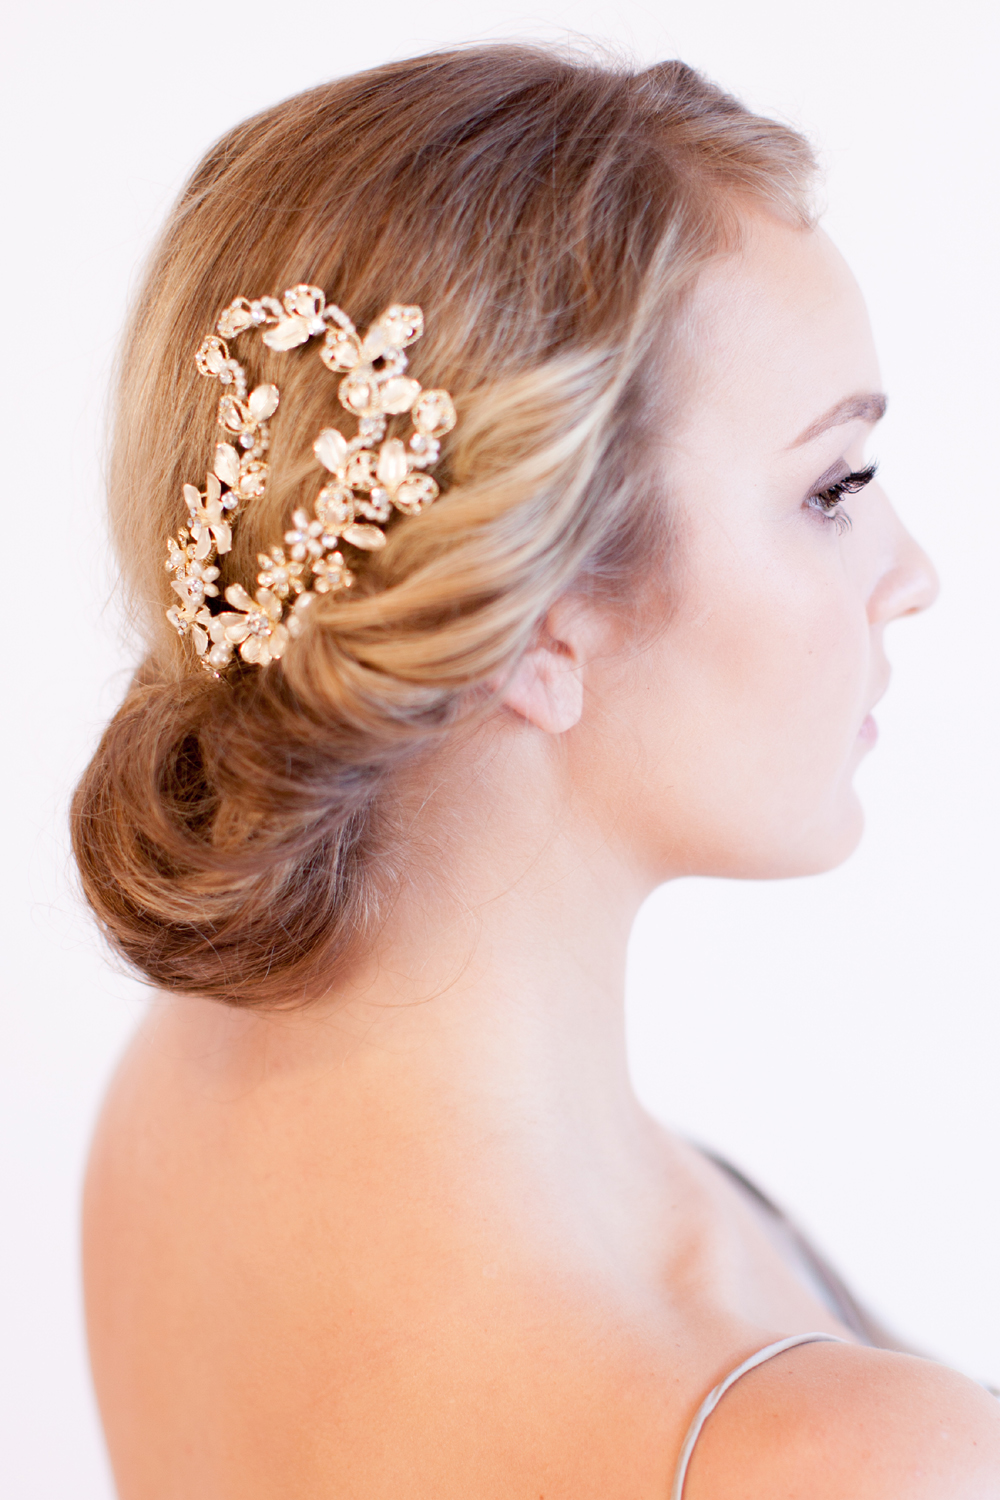 The Pearl & Glitter Headpiece Comb by Justine M Couture